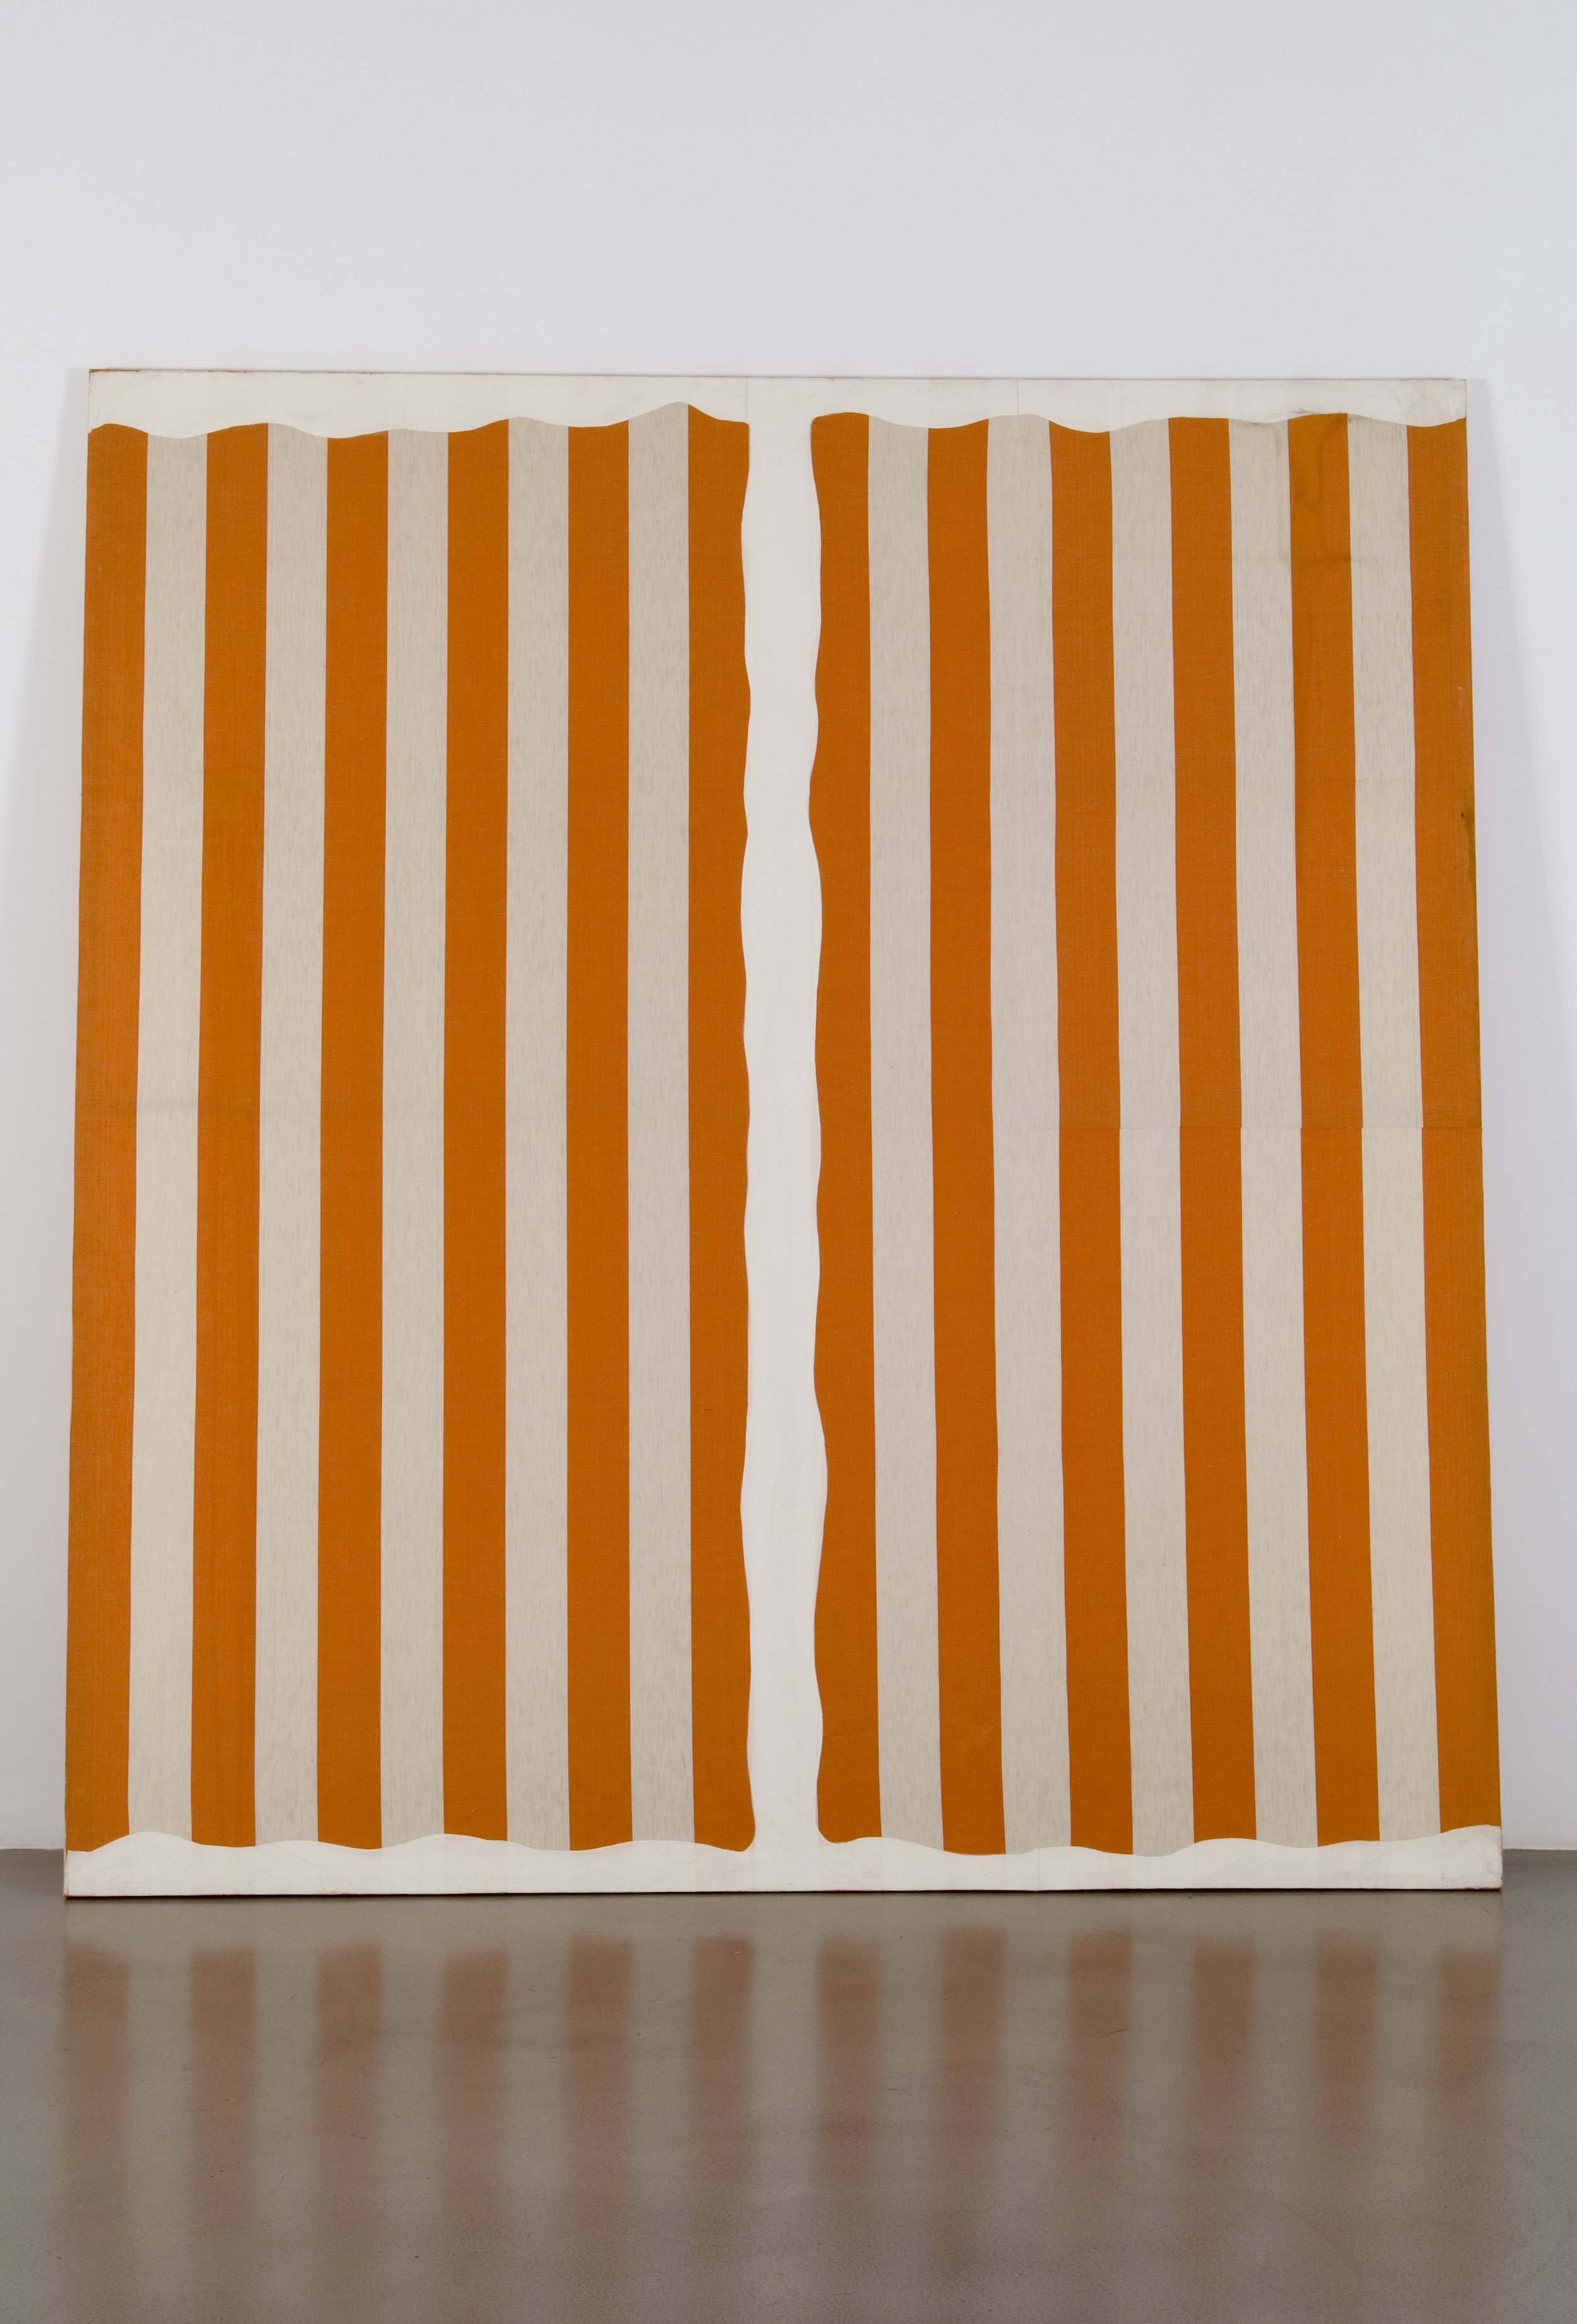 Daniel Buren  Peinture aux formes variables,    [September-October] 1966  Acrylic on cotton fabric 217 x 200.5 cm (on canvas) Collection Fondation Louis Vuitton, Paris. © DB - Adagp, Paris .2019 Picture: Courtesy of the artist and Kamel Mennour, Paris